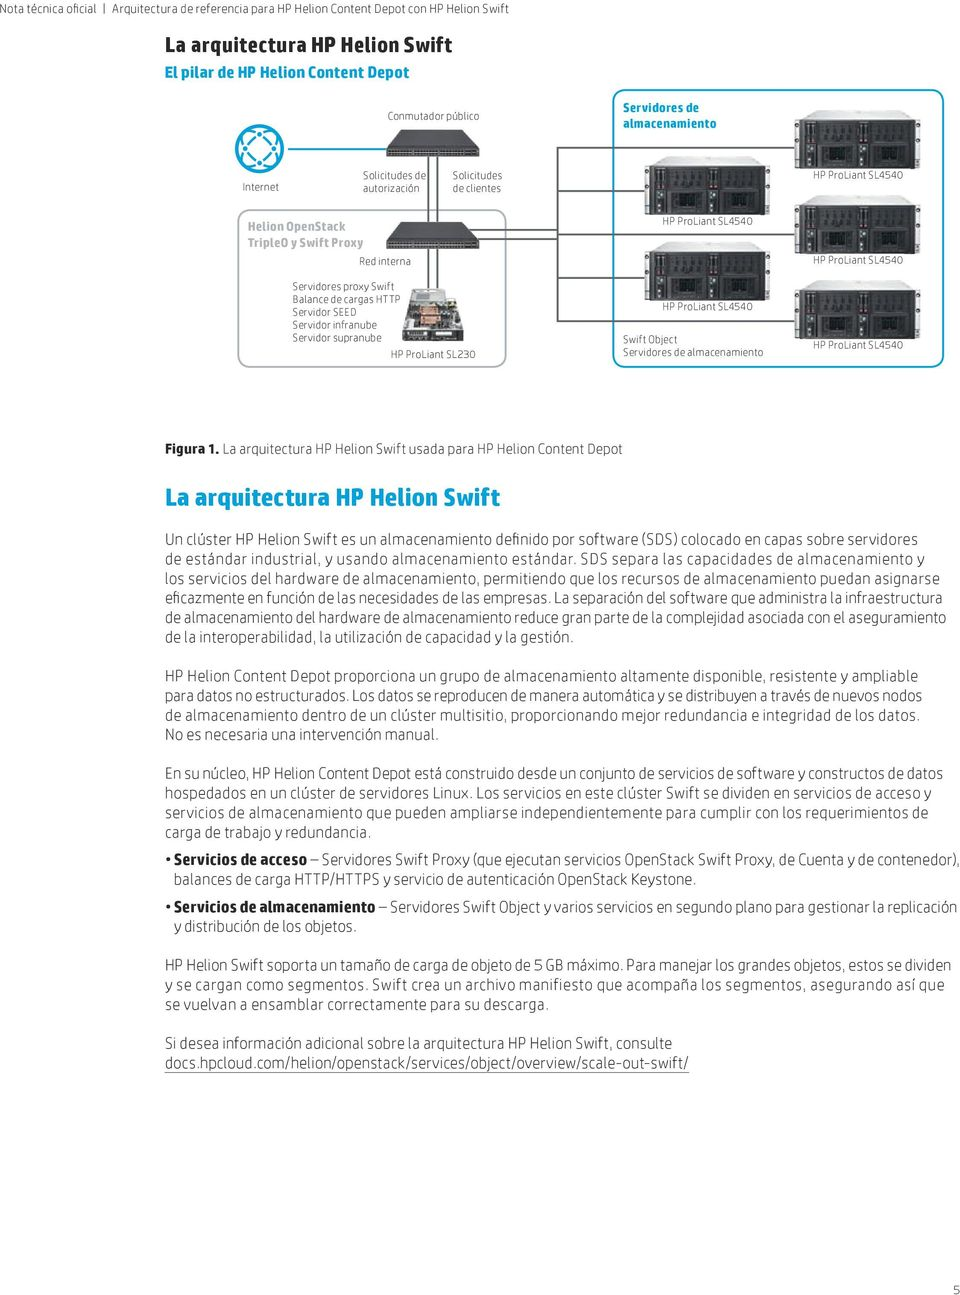 SL4540 Swift Object Servidores de almacenamiento HP ProLiant SL4540 HP ProLiant SL4540 Figura 1.